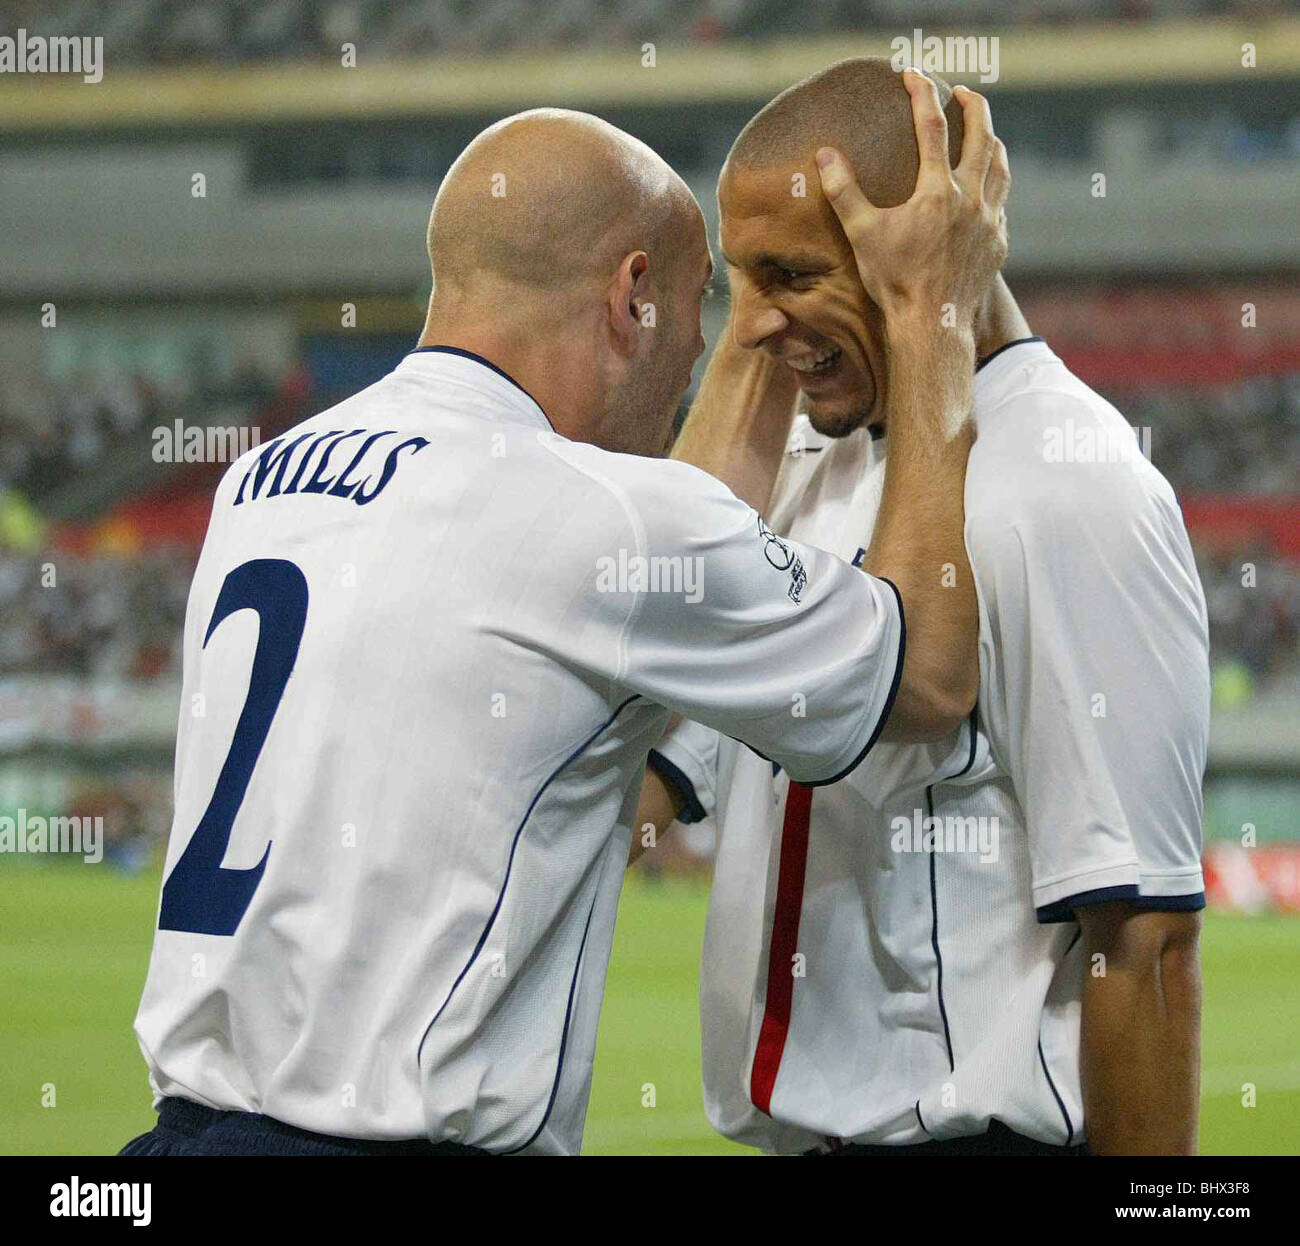 England 3 Denmark 0 June 2002, Mills grabs FerdinandÕs head after Ferdinand scores the 1st goal. - Stock Image